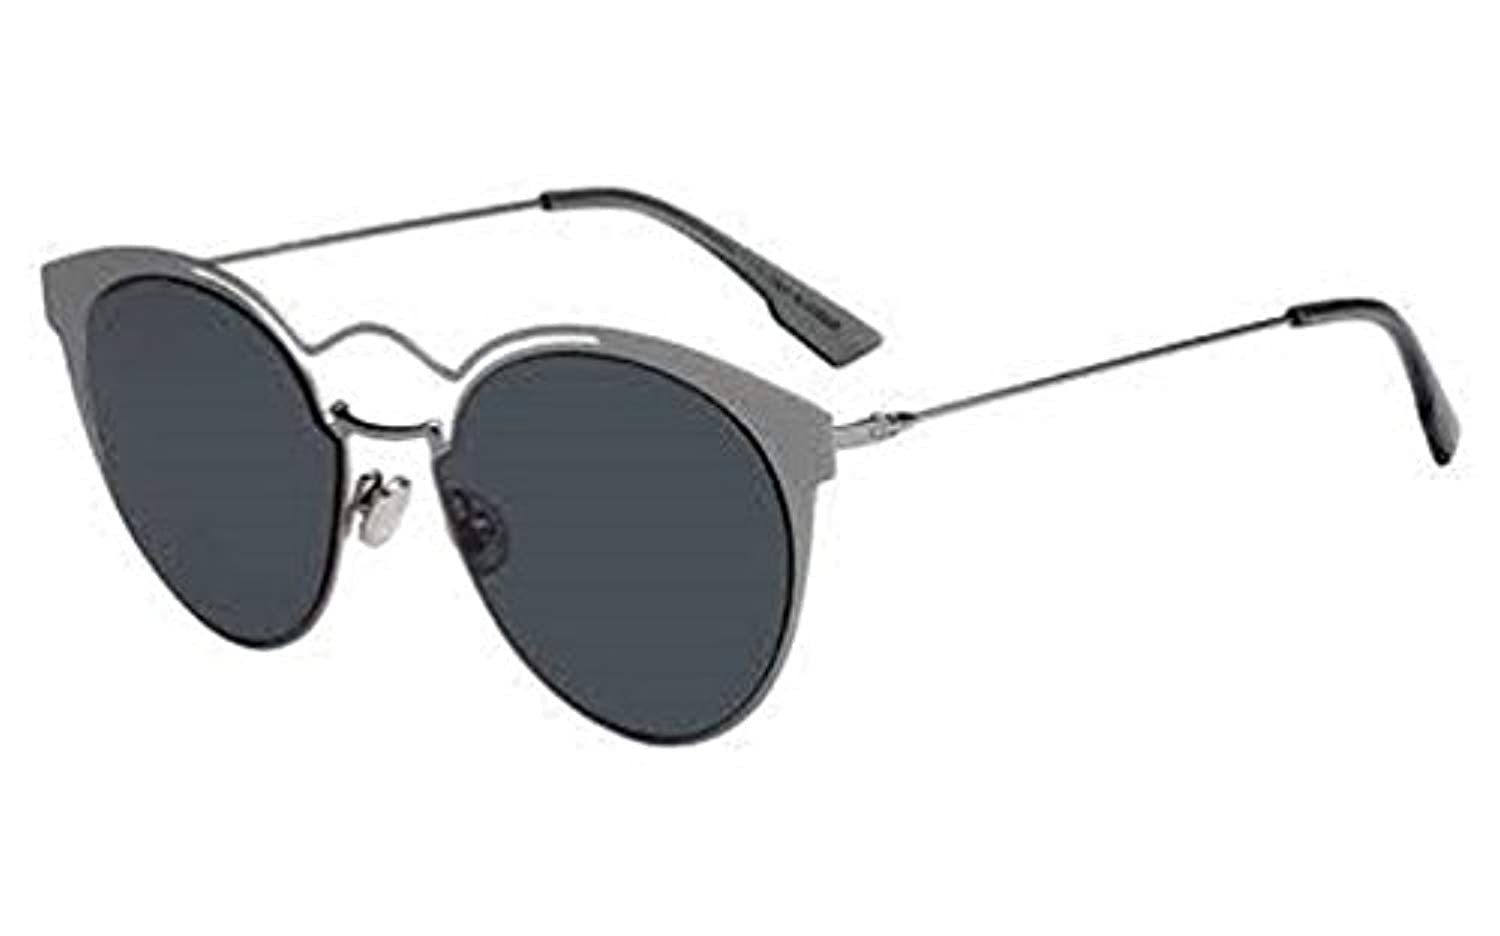 743a0cf29d53 Amazon.com  Dior Nebula S - Dark Ruthenium 0KJ1 Sunglasses  Clothing